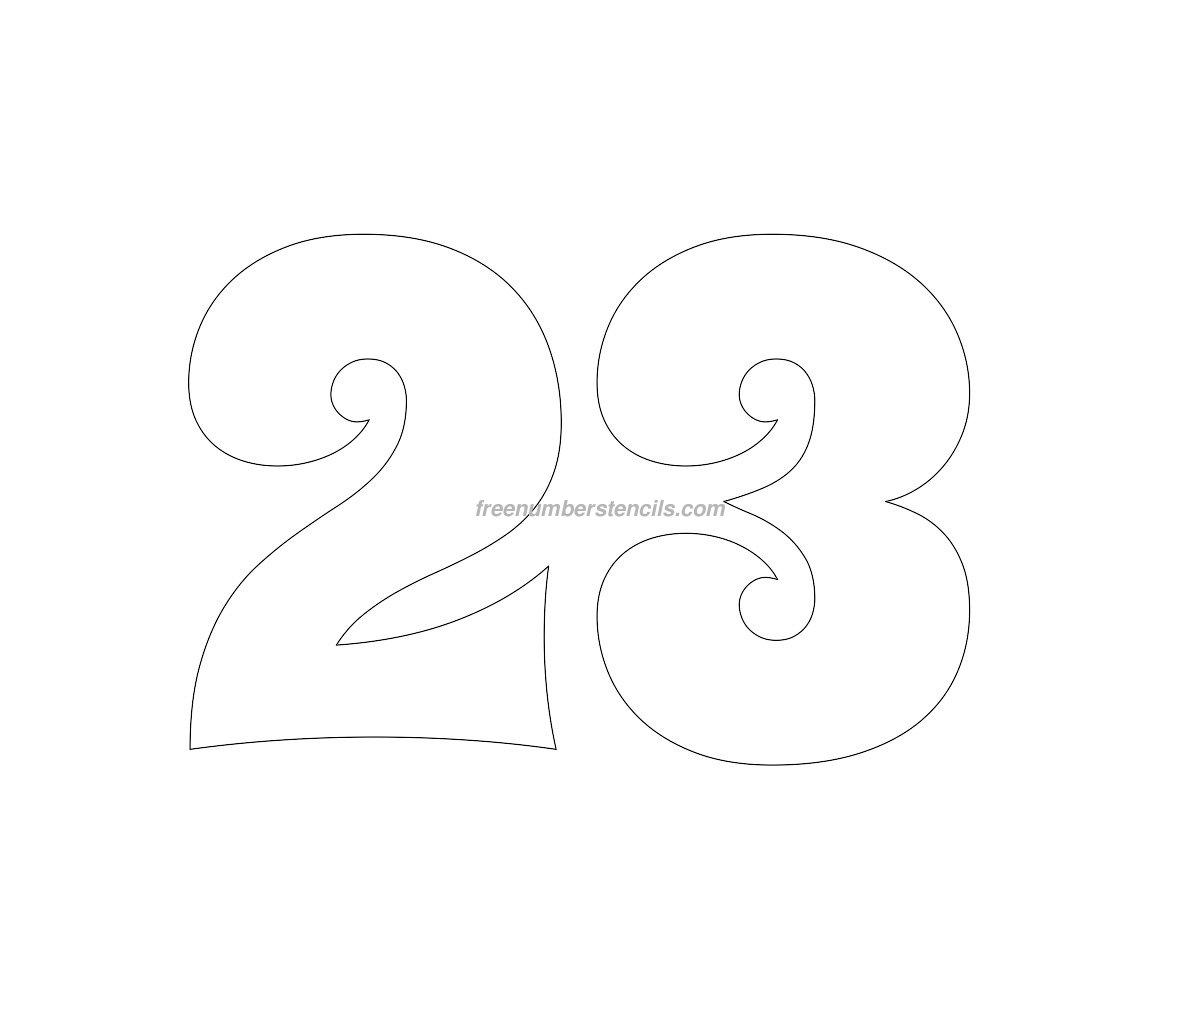 stencil-groovy-number-23